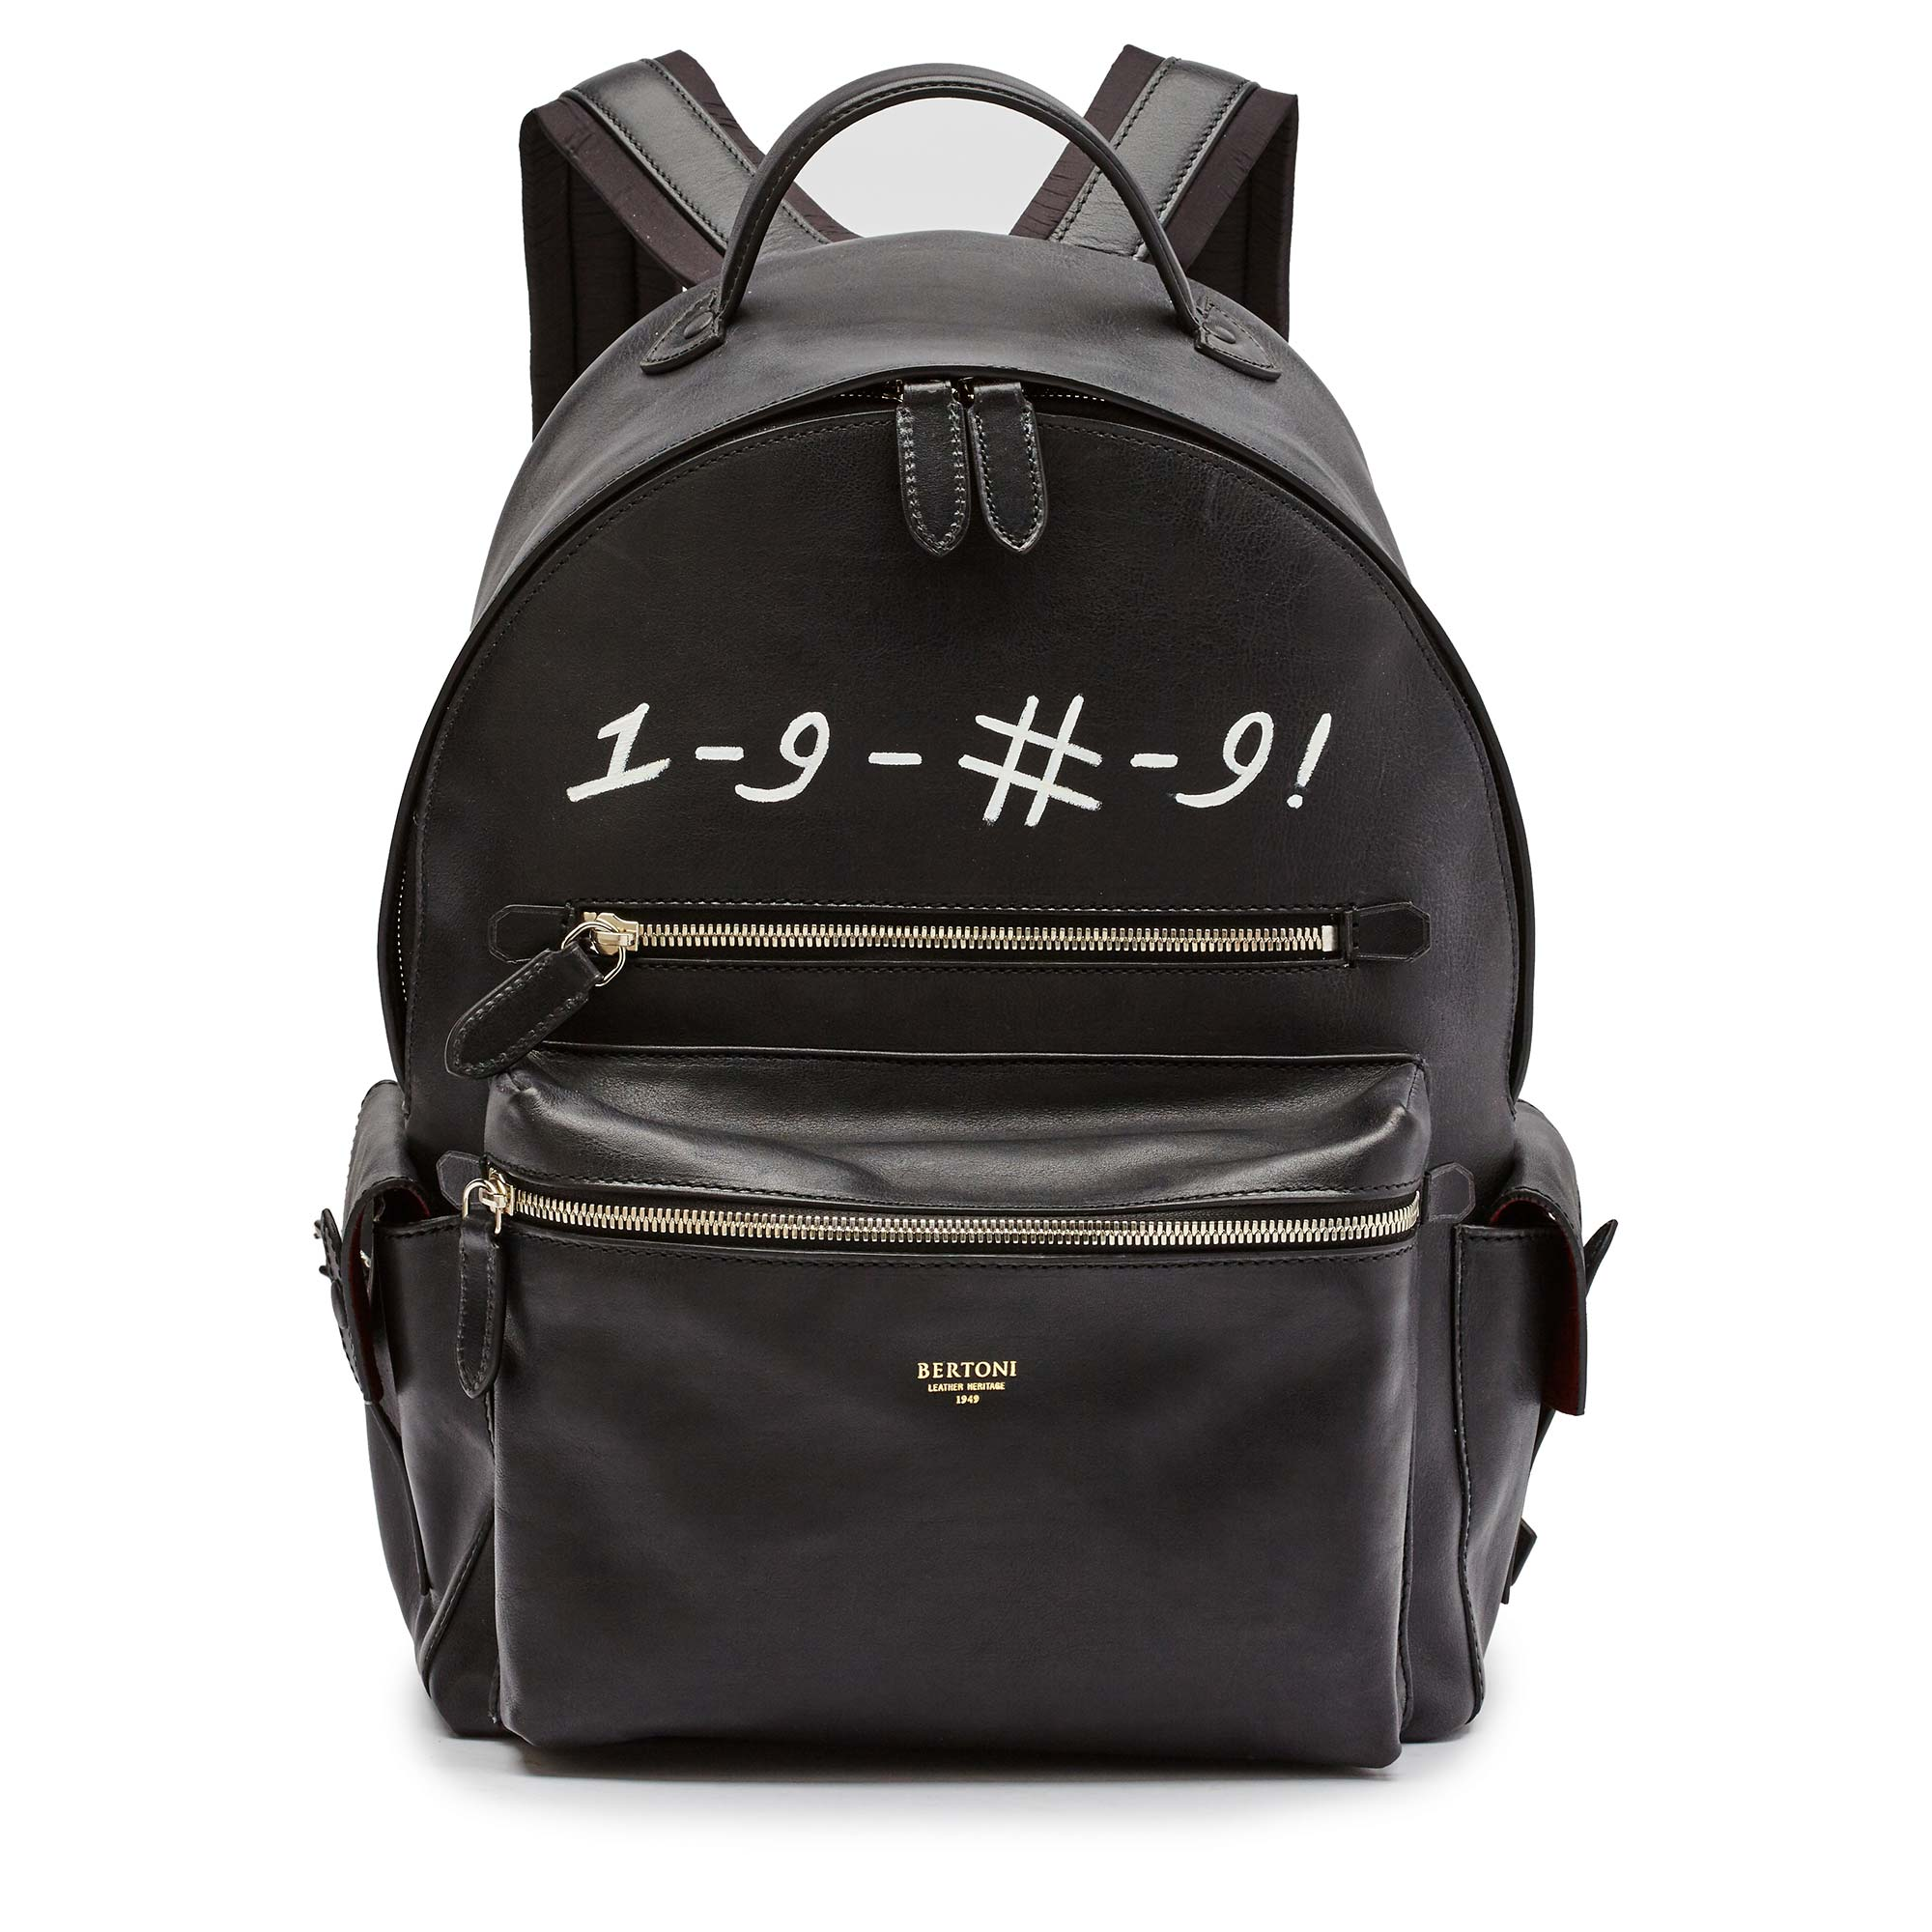 Zip-Backpack-black-rock-calf-Bertoni-1949